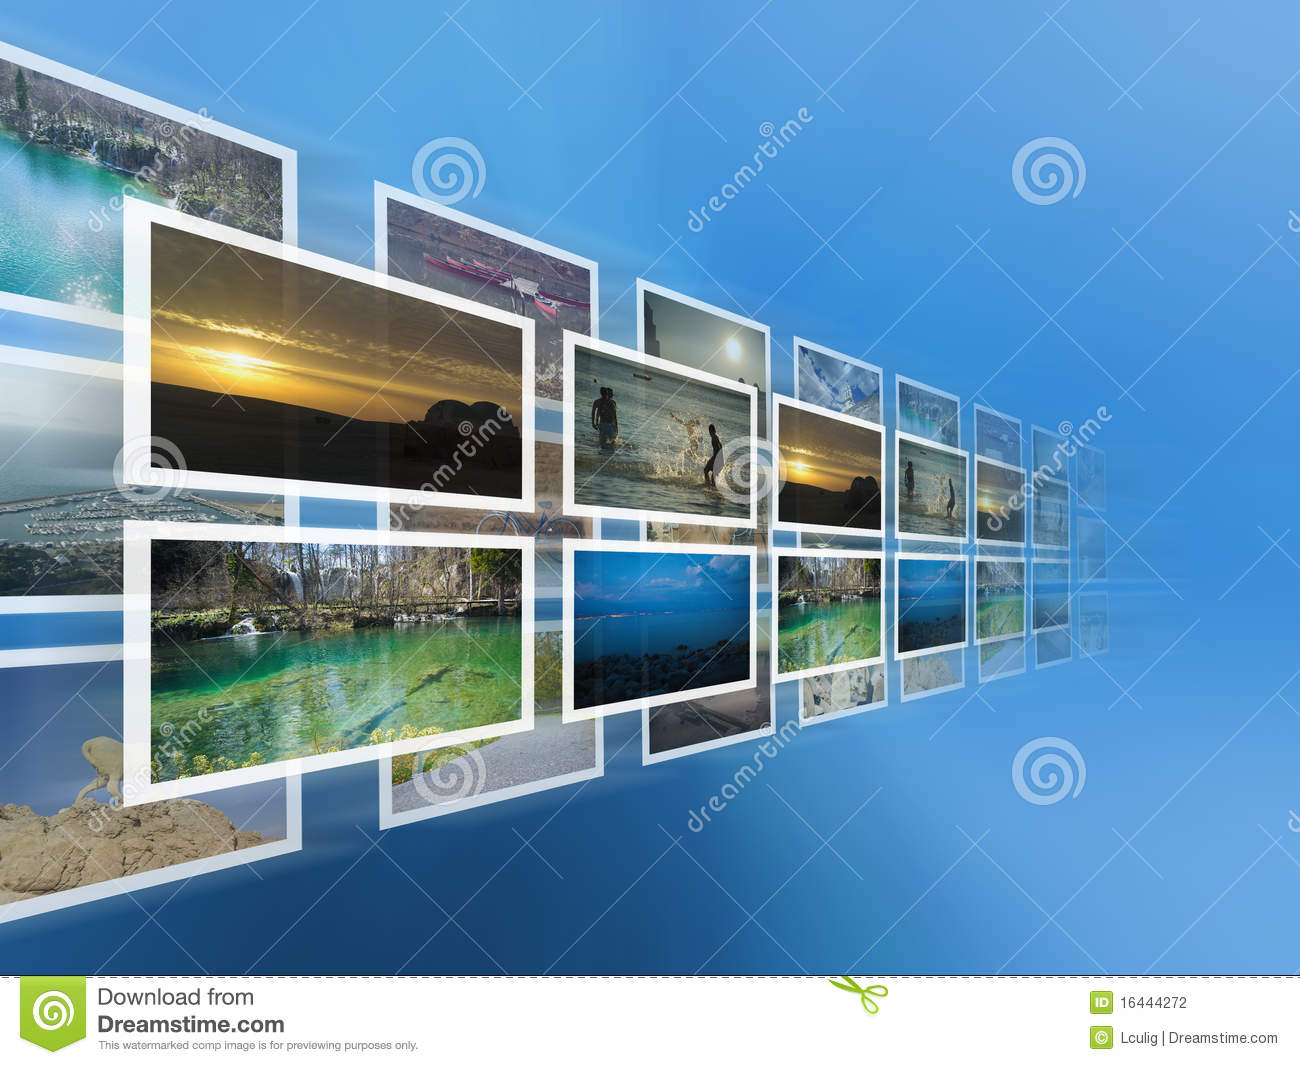 Digital images on the virtual screen